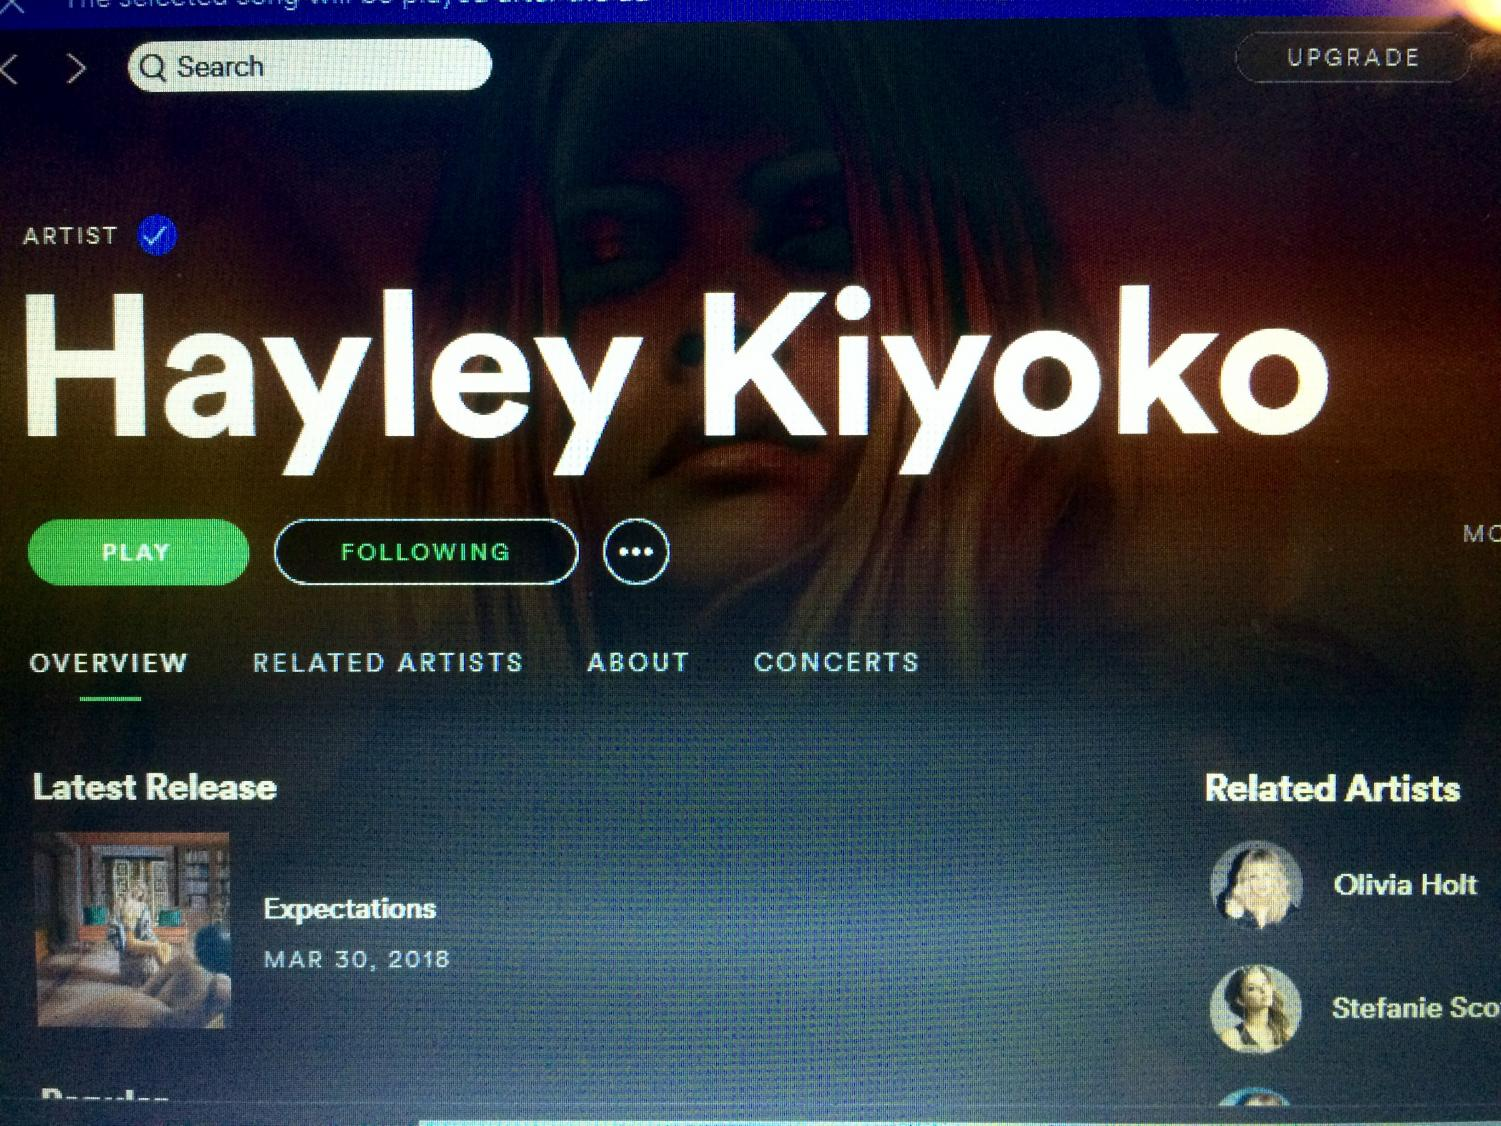 Hayley Kiyoko has over 4.5 million monthly listeners on Spotify.